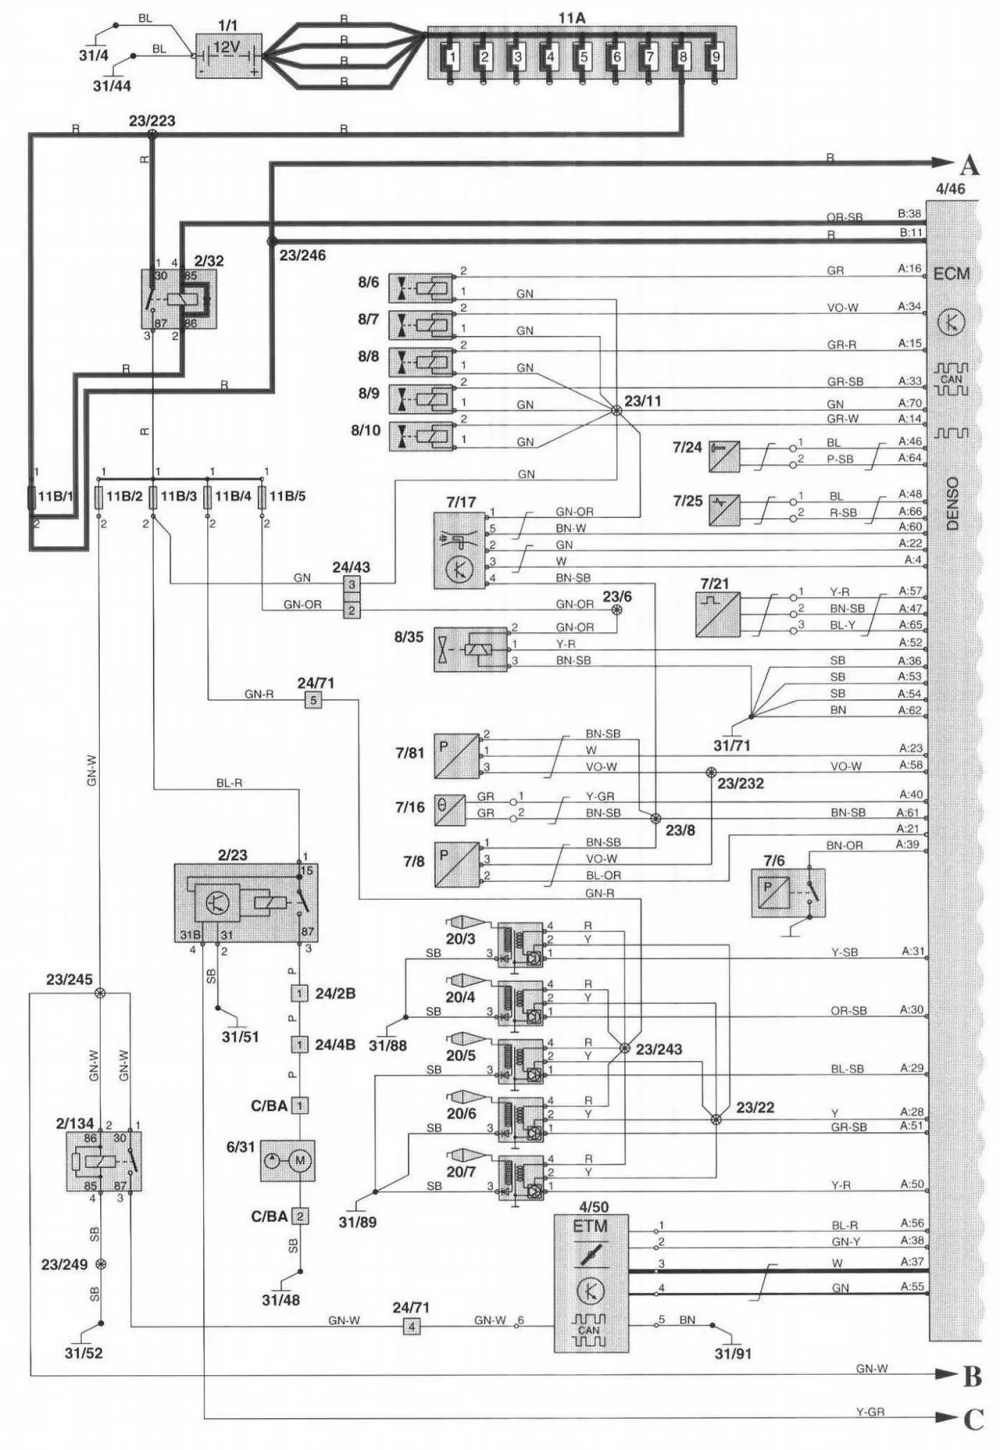 medium resolution of volvo vnl alternator wiring diagrams ford f800 wiring volvo wiring diagrams v70 1997 wipers volvo wiring diagrams fh12